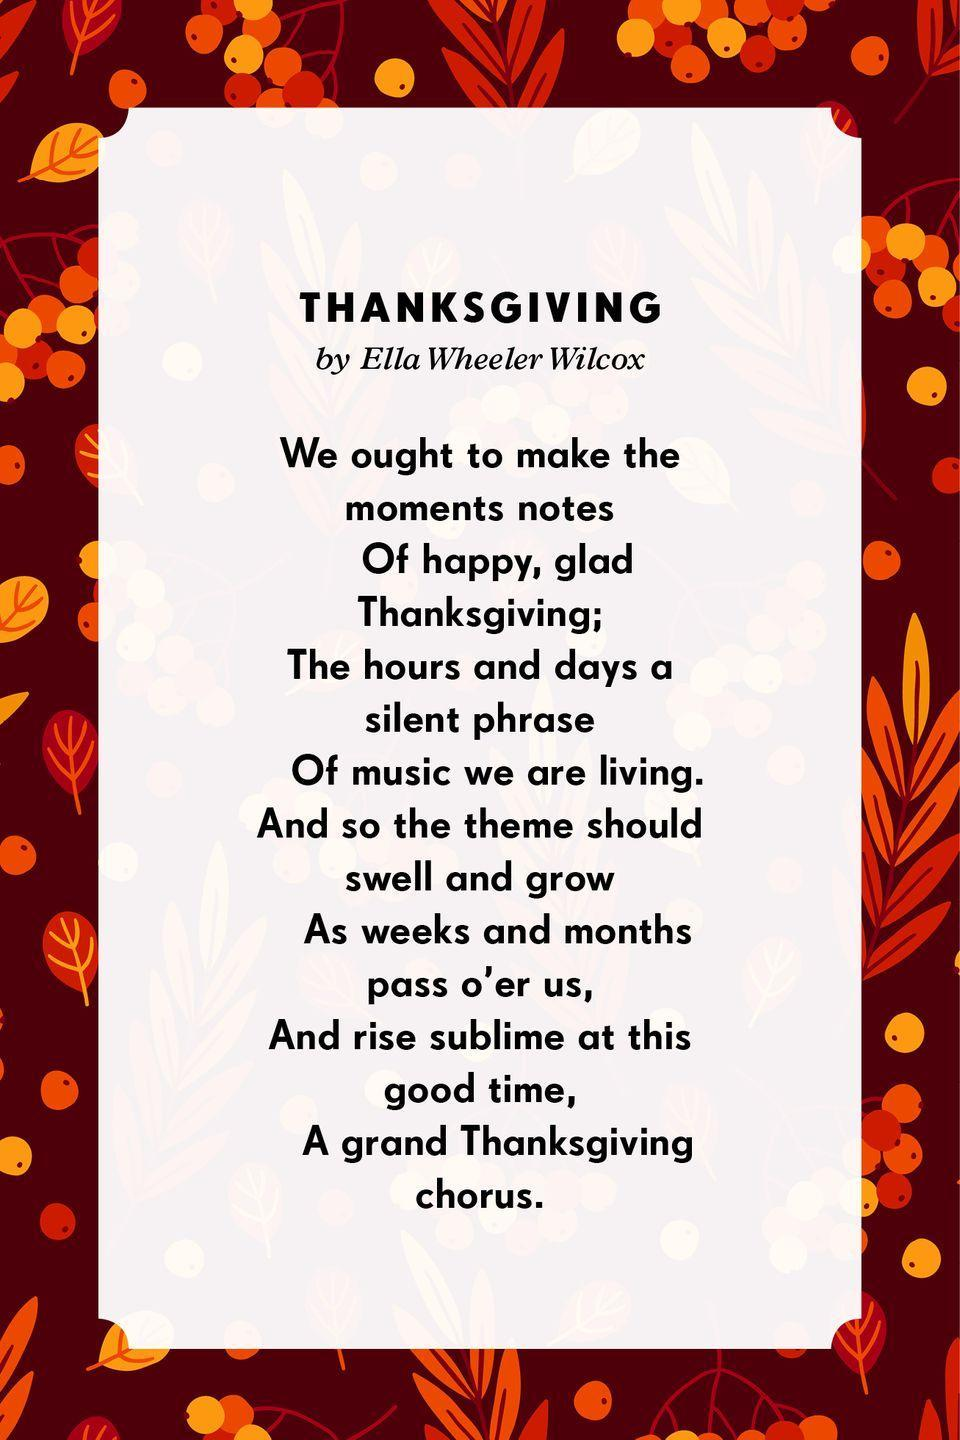 <p><strong>Thanksgiving</strong></p><p>We ought to make the moments notes<br> Of happy, glad Thanksgiving;<br>The hours and days a silent phrase<br> Of music we are living.<br>And so the theme should swell and grow<br> As weeks and months pass o'er us,<br>And rise sublime at this good time,<br> A grand Thanksgiving chorus.</p>